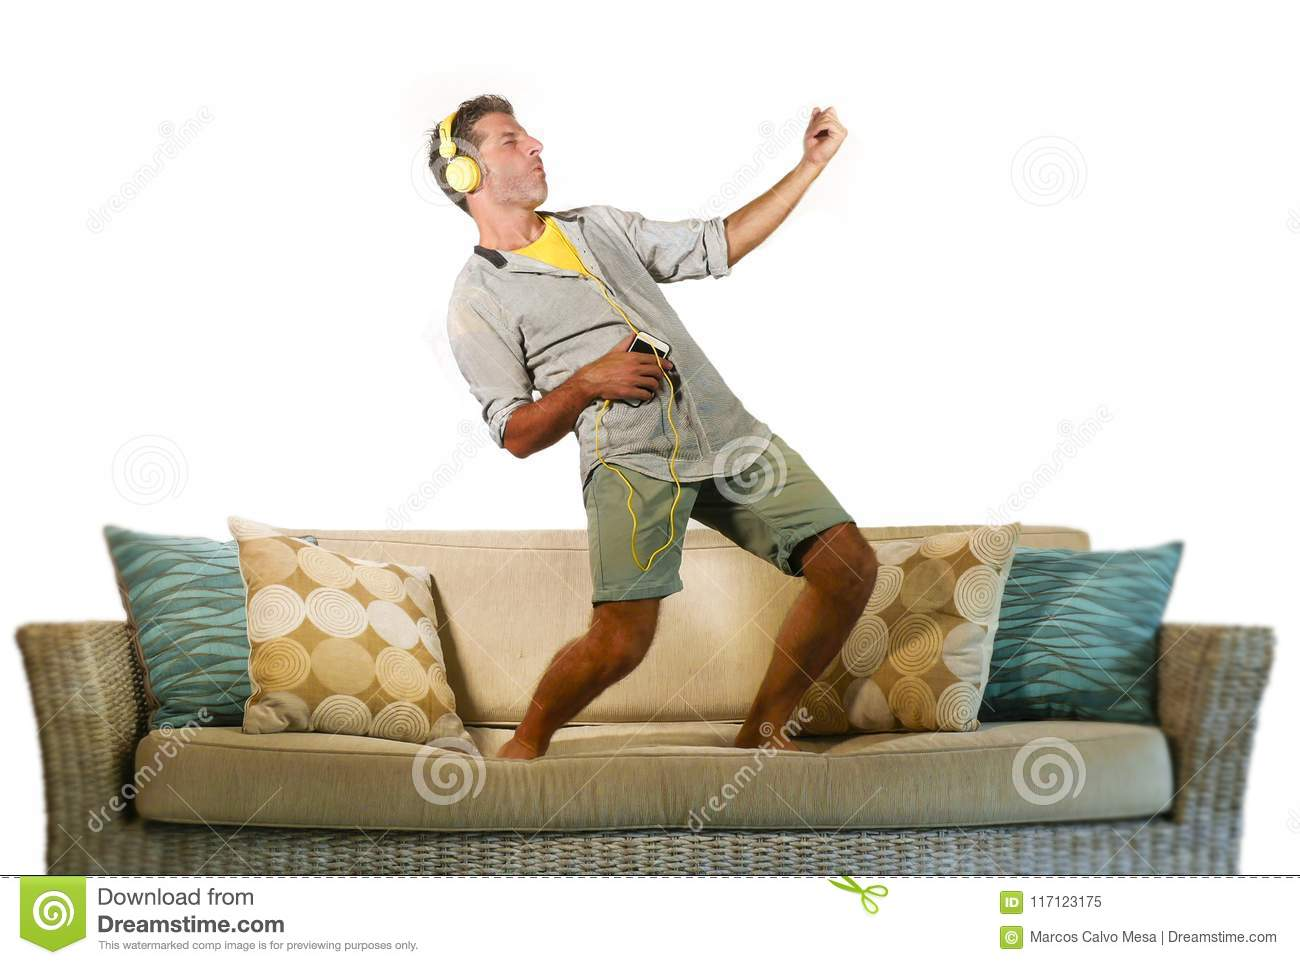 Young happy and excited man jumping on sofa couch listening to music with mobile phone and headphones playing air guitar crazy hav